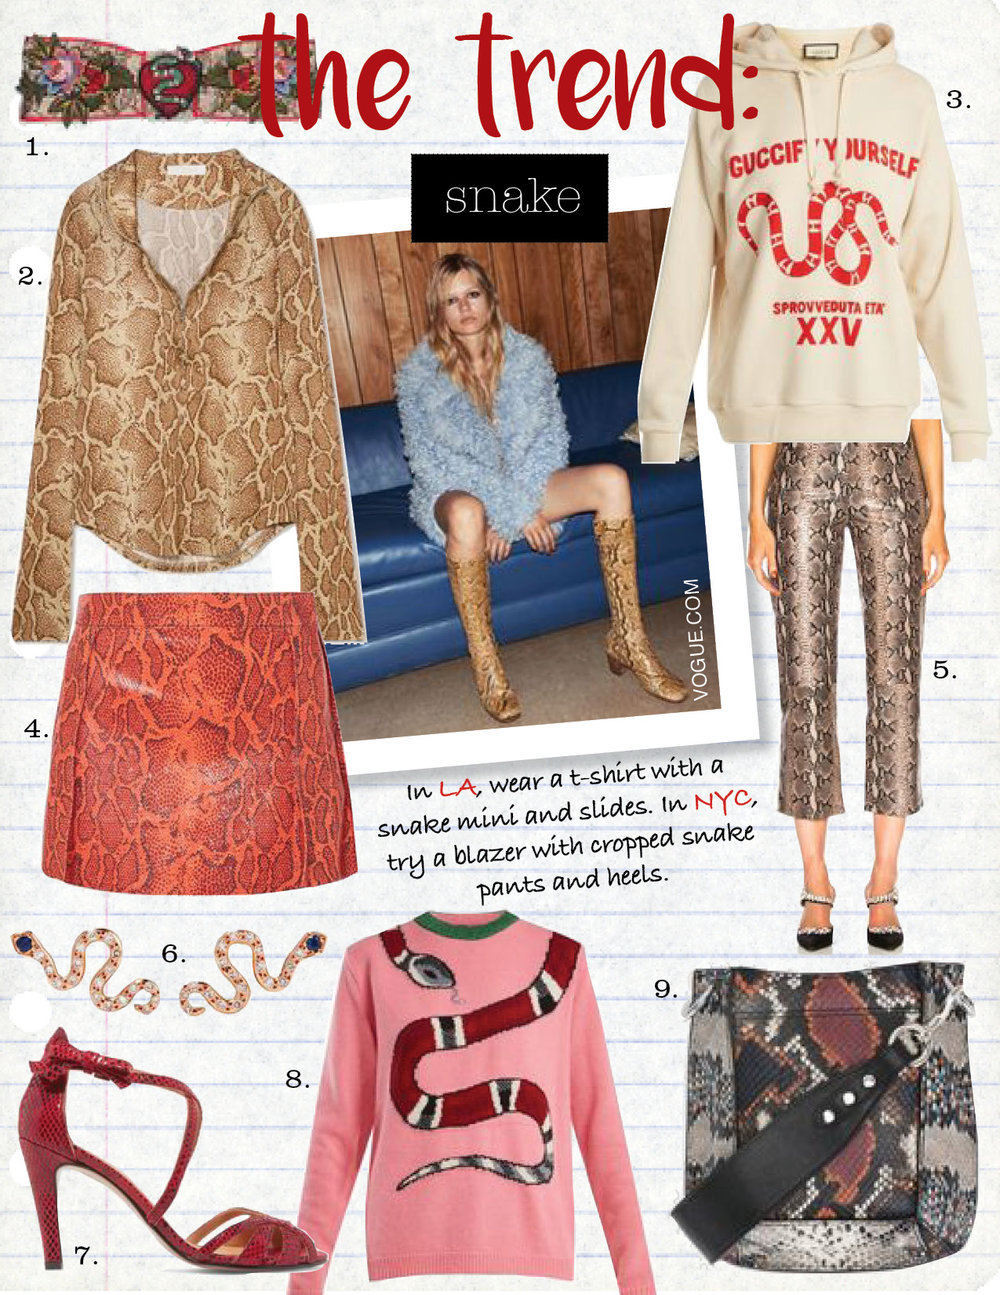 1. gucci limited edition silk headband, $410,  gucci.com  2. chloe snake-print satin-jersey top, $1150,  net-a-porter.com  3. gucci snake-print cotton-jersey hooded sweatshirt, $1148,  matchesfashion.com   4. chloe snake-effect leather mini skirt, $3295,  net-a-porter.com                                         5. lpa pant 297 in tan snake, $598,  fwrd.com  6. ileana makri little snake 18k rose gold, diamond and sapphire earrings, $1315,  net-a-porter.com  7. ganni tamika snake-effect leather sandals, $315,  net-a-porter.com  8. gucci snake-intarsia wool-blend sweater, $1019,  matchesfashion.com  9. isabel marant nasko small hobo bag, $675,  isabelmarant.com